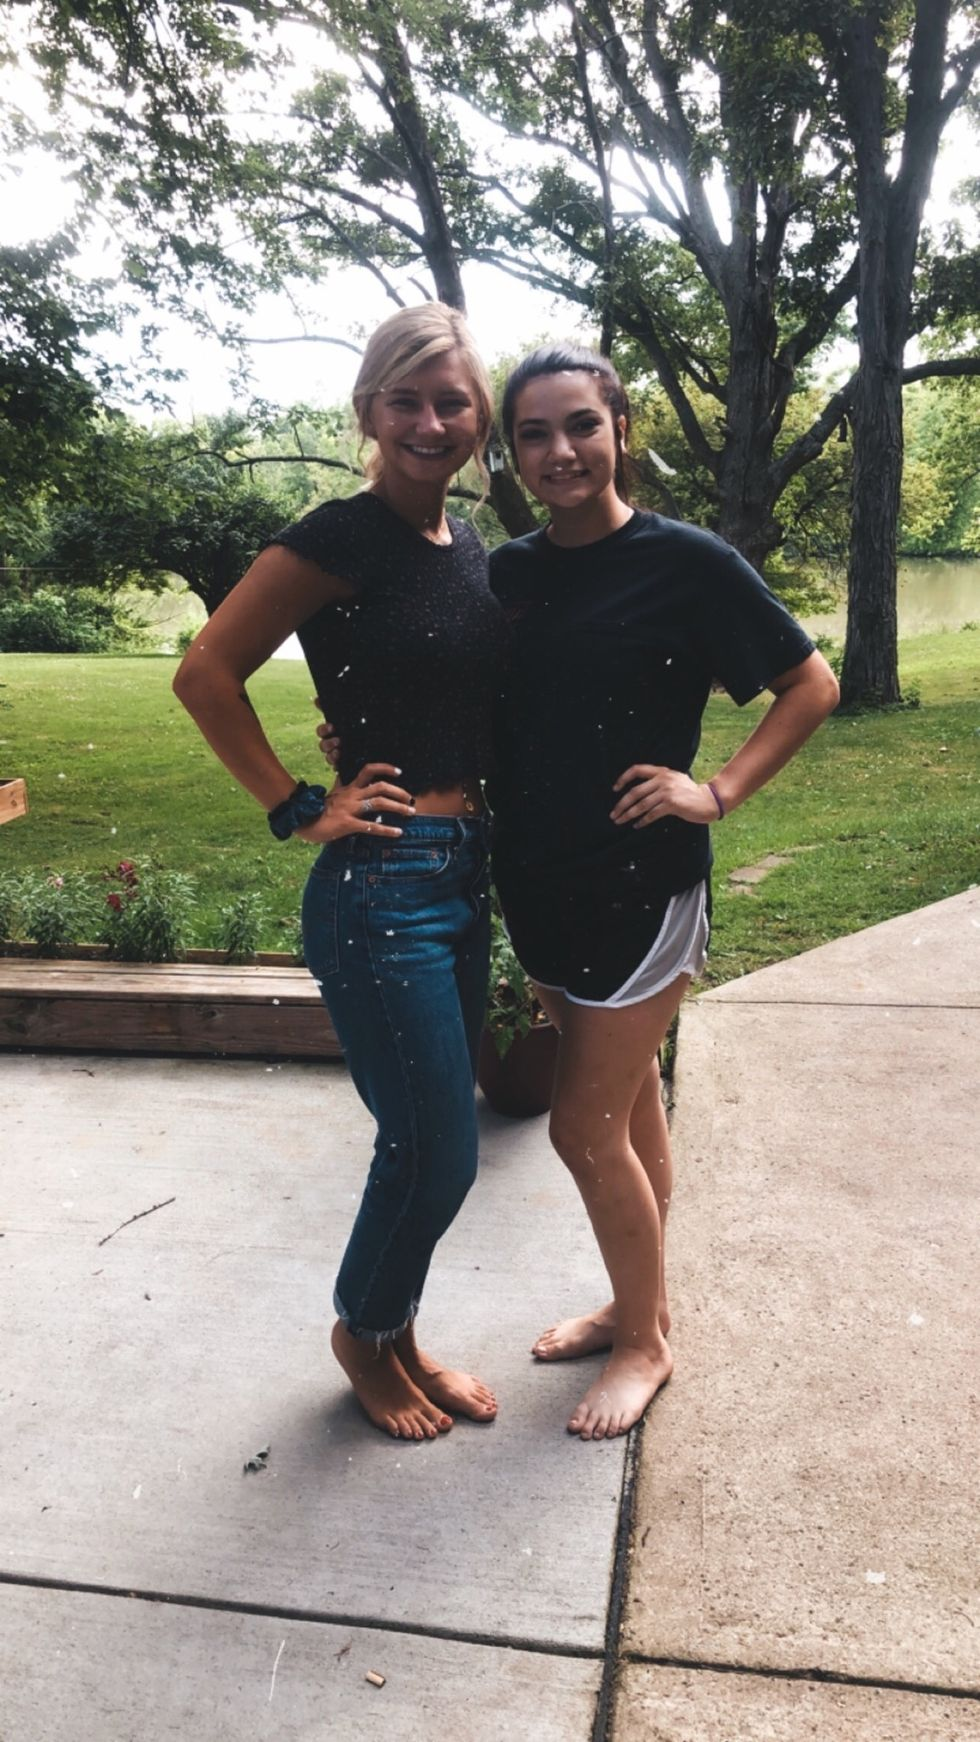 10 Things You Think When Your Best Friend Is Leaving For Basic Training